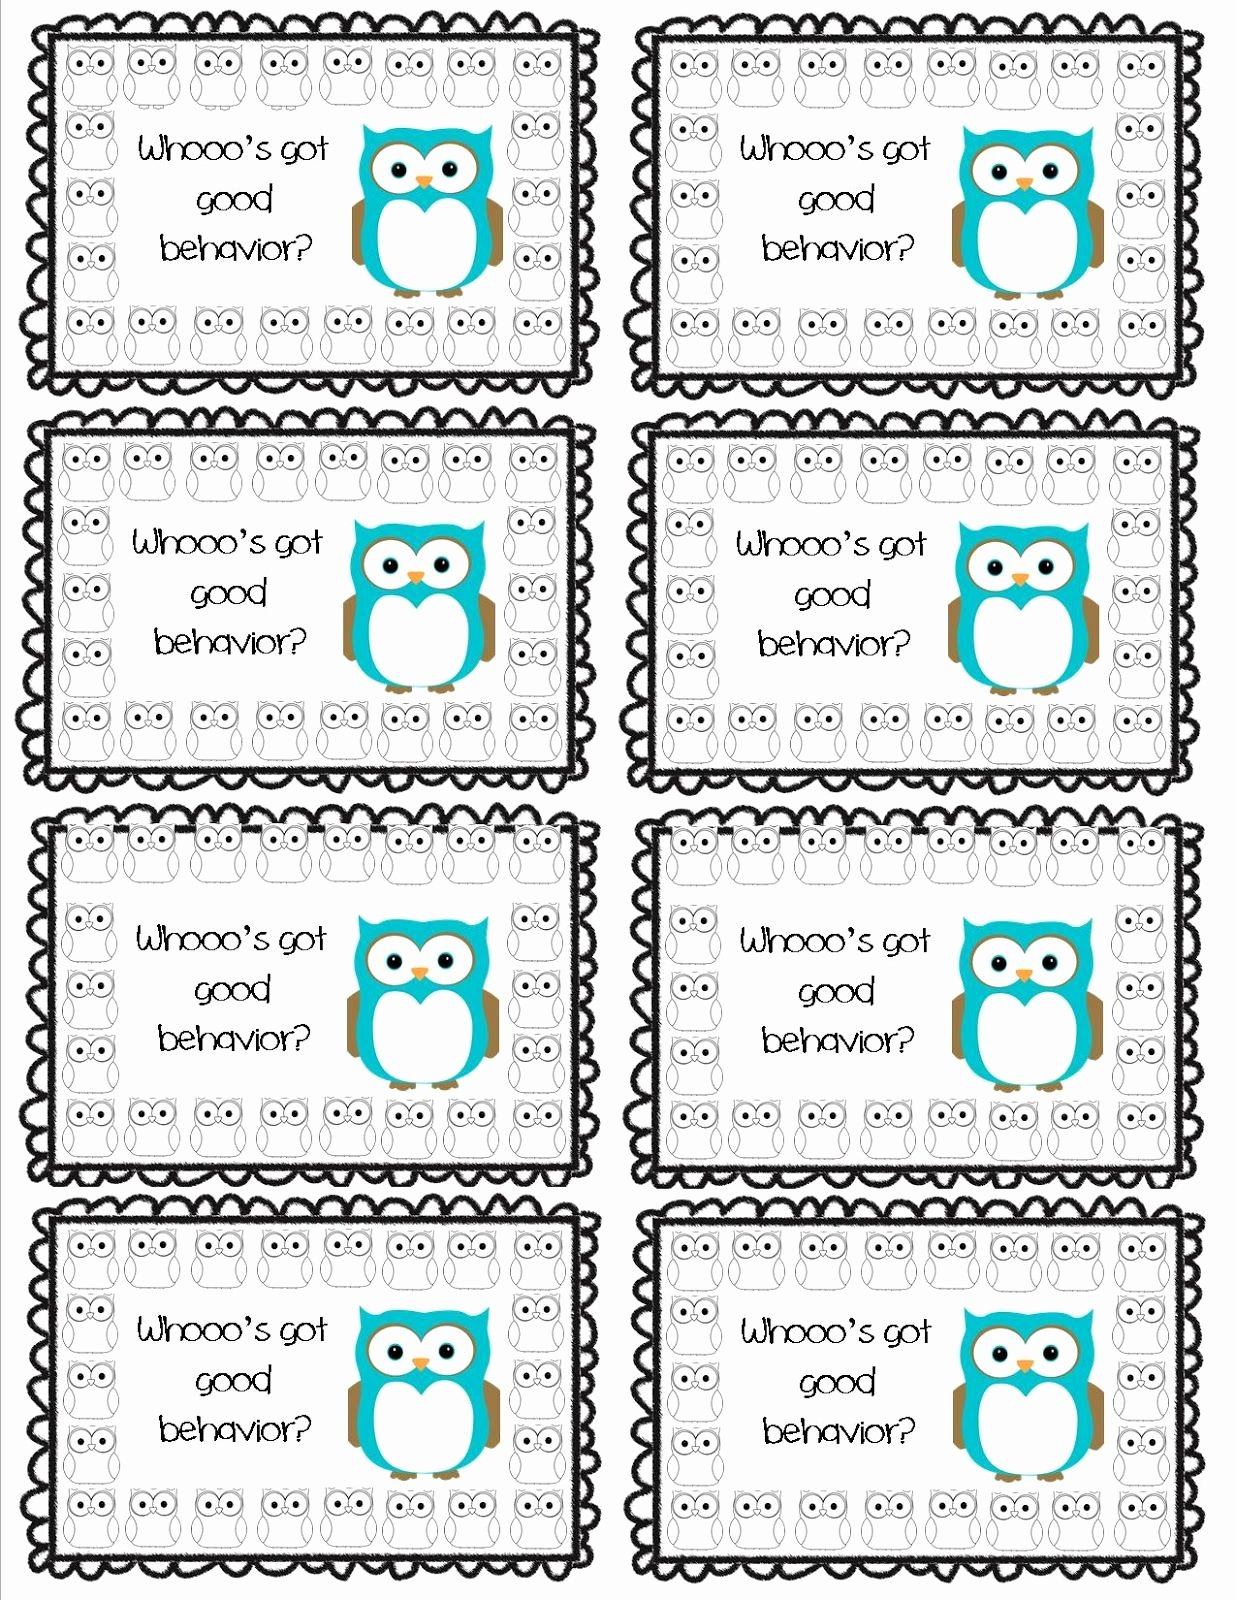 Punch Cards Template Free Awesome whooo S Got Good Behavior Punch Card Part Of A Set Of 8